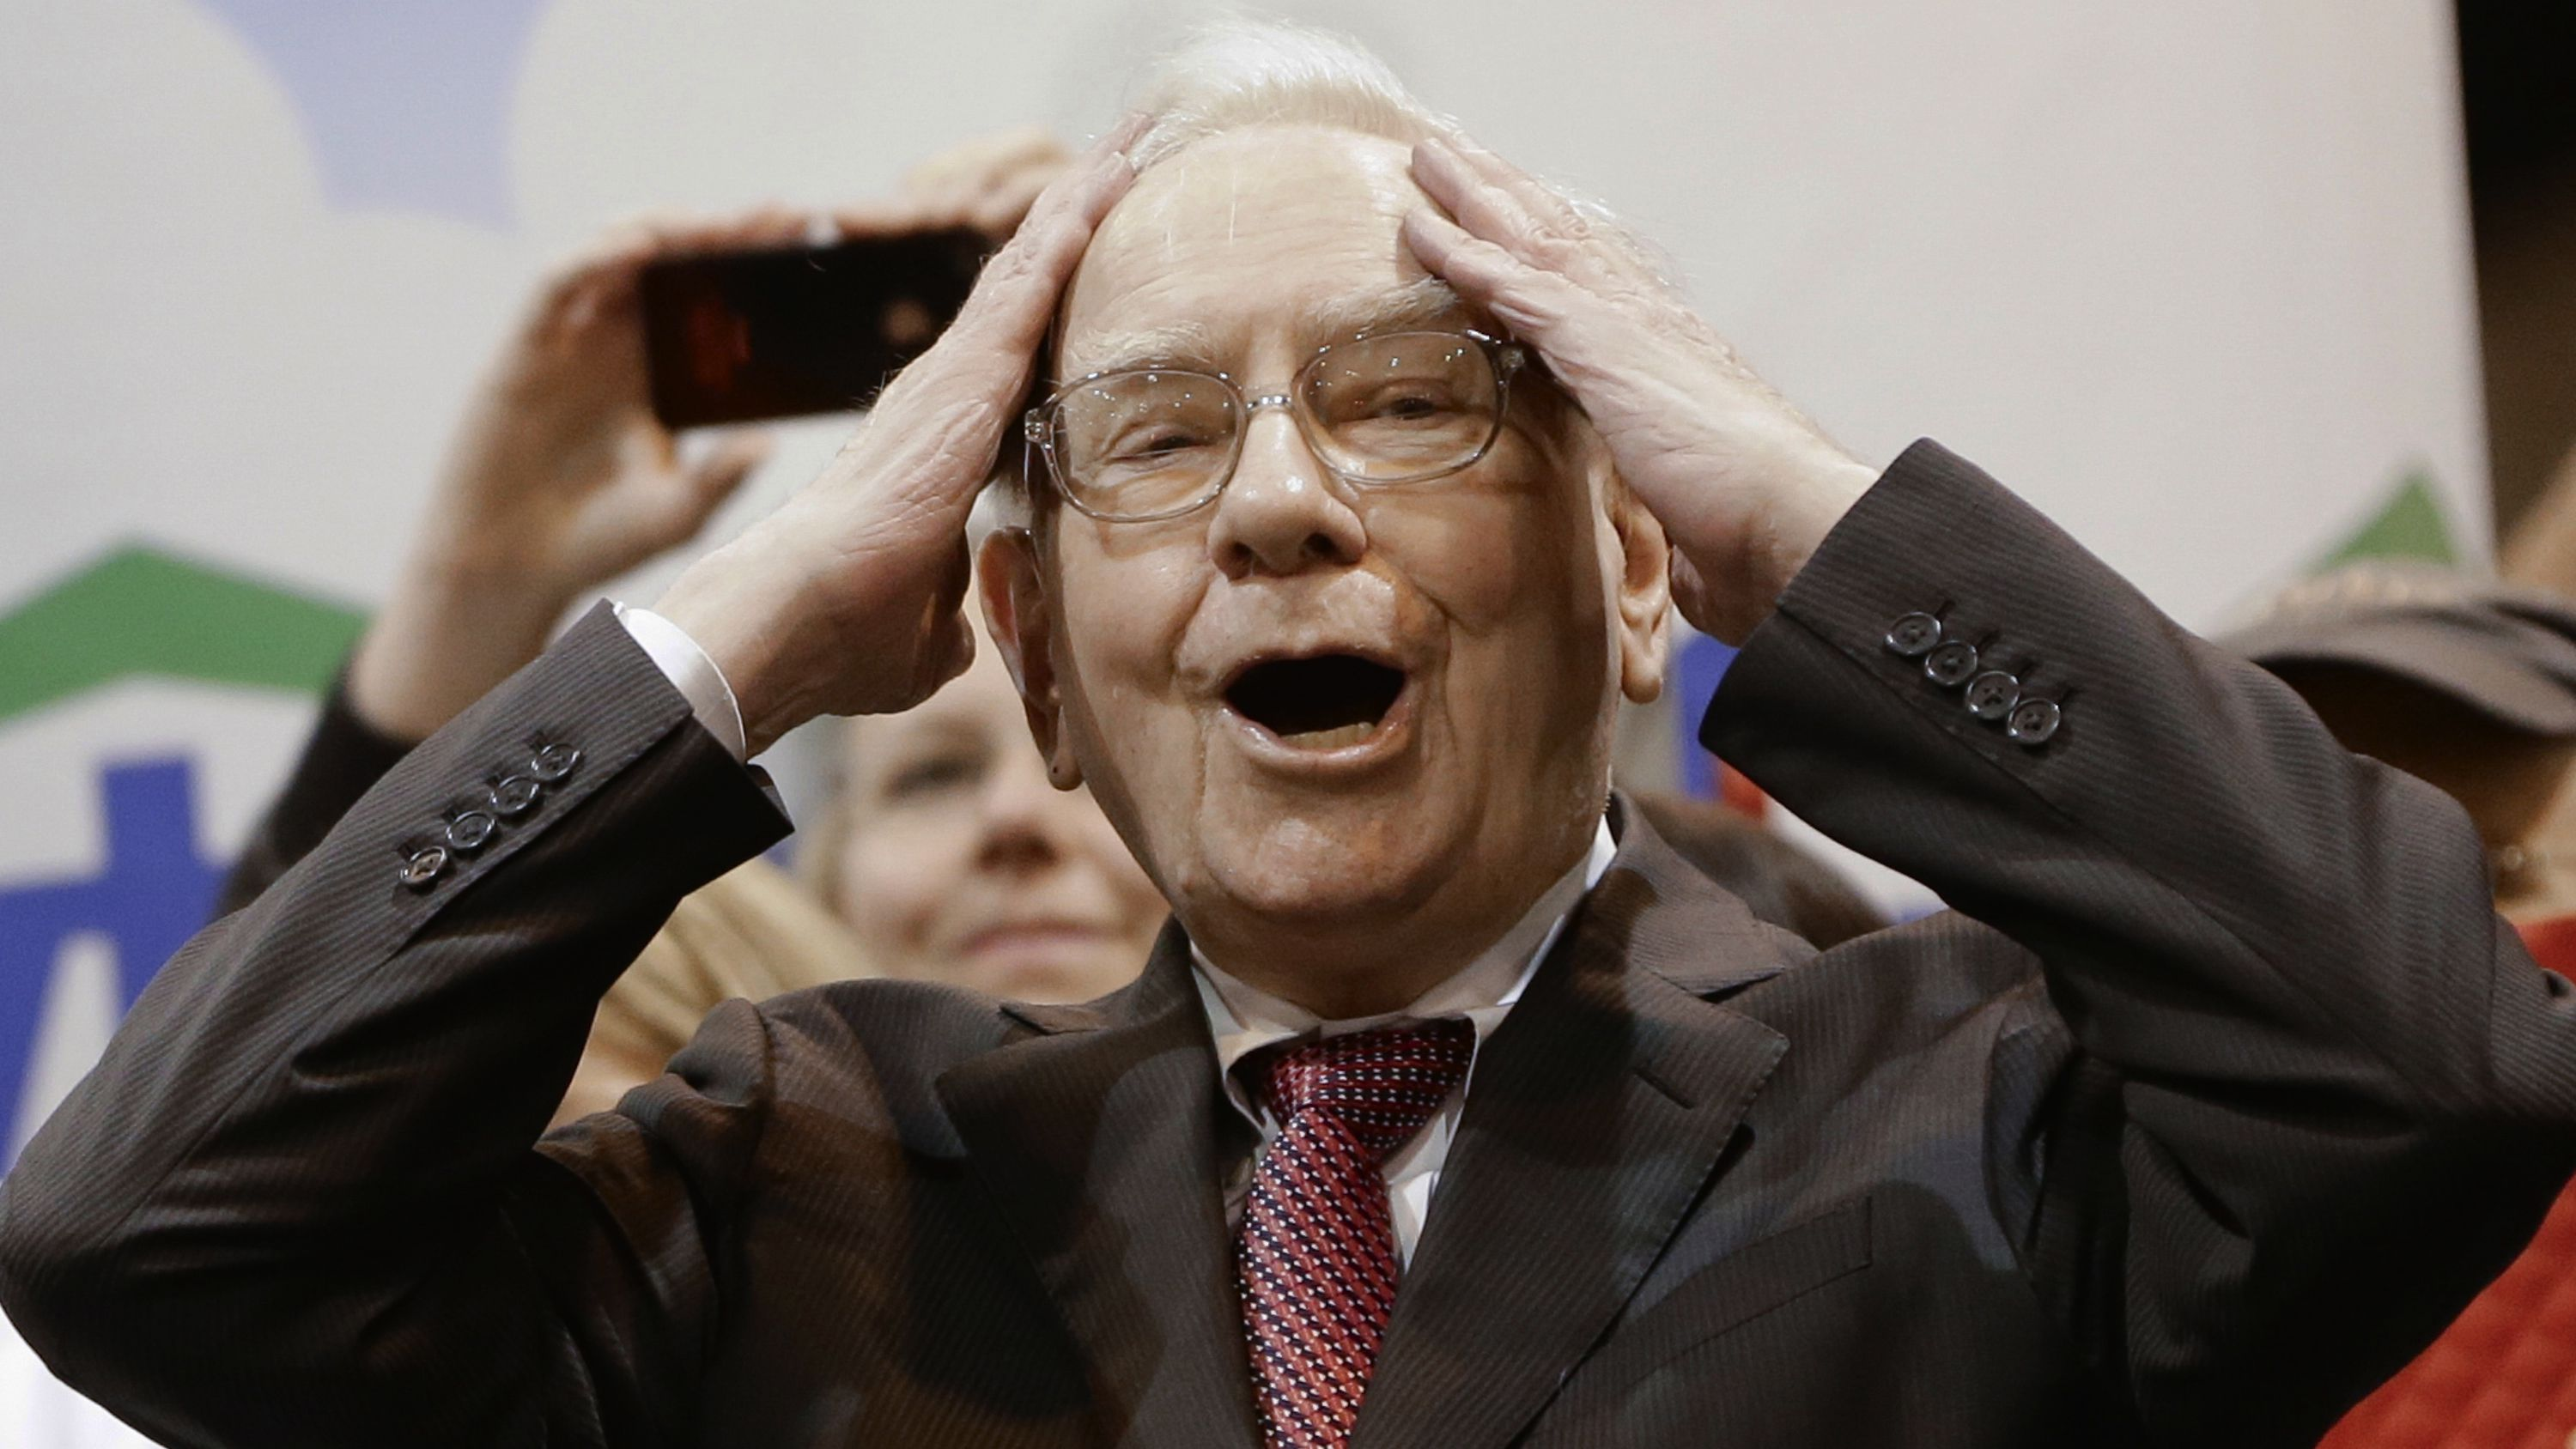 Berkshire Hathaway Chairman and CEO Warren Buffett reacts at the newspaper throwing competition while touring the exhibition floor prior to the annual shareholders meeting on Saturday, May 3, 2014, in Omaha, Neb. More than 30,000 shareholders are expected to fill the CenturyLink Arena to hear Buffett and Berkshire Vice Chairman Charlie Munger discuss their business. (AP Photo/Nati Harnik)